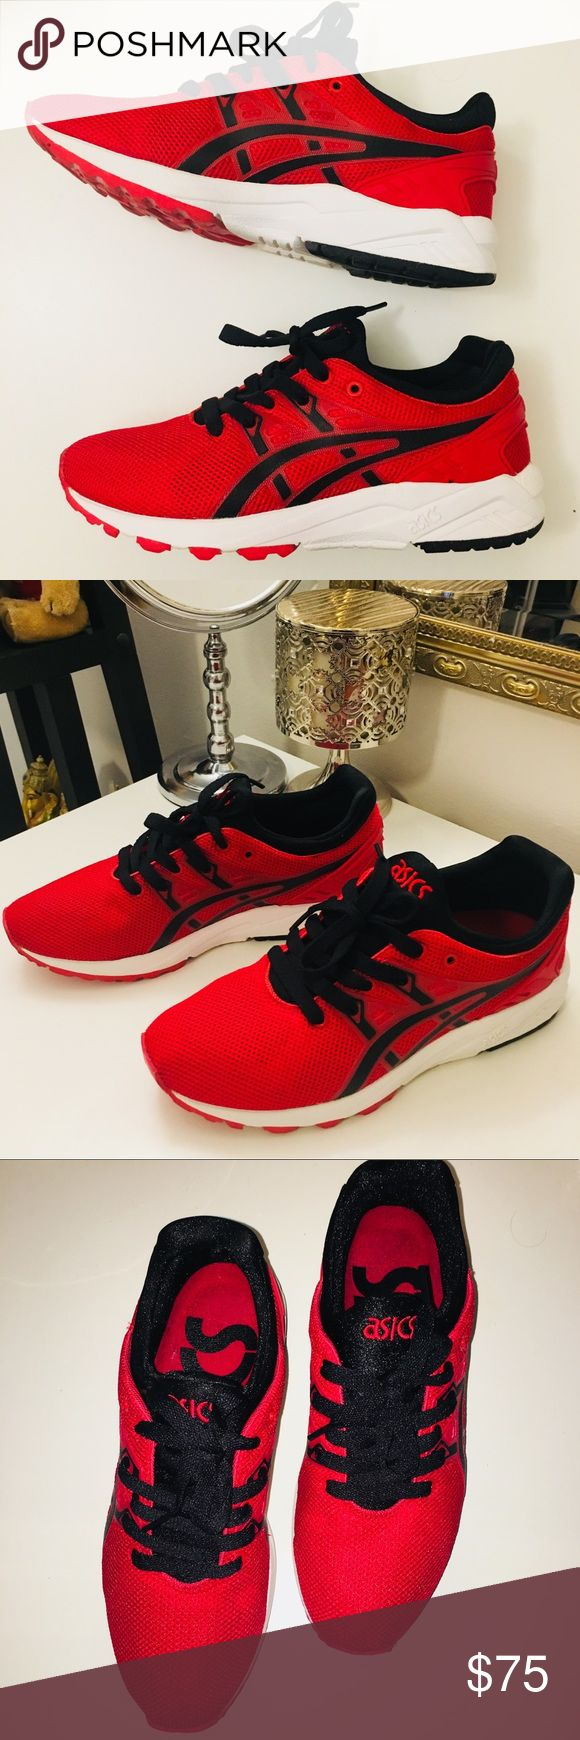 ASICS Gel Kayano Trainer EVO Red/Black GREAT CONDITION Red and black Asics Gel Kayano Trainer model with lightweight upper, TPU on the stripes, and white midsole. Comfortable lightweight feel and a streamlined look. Run slightly big. Asics Shoes Sneakers